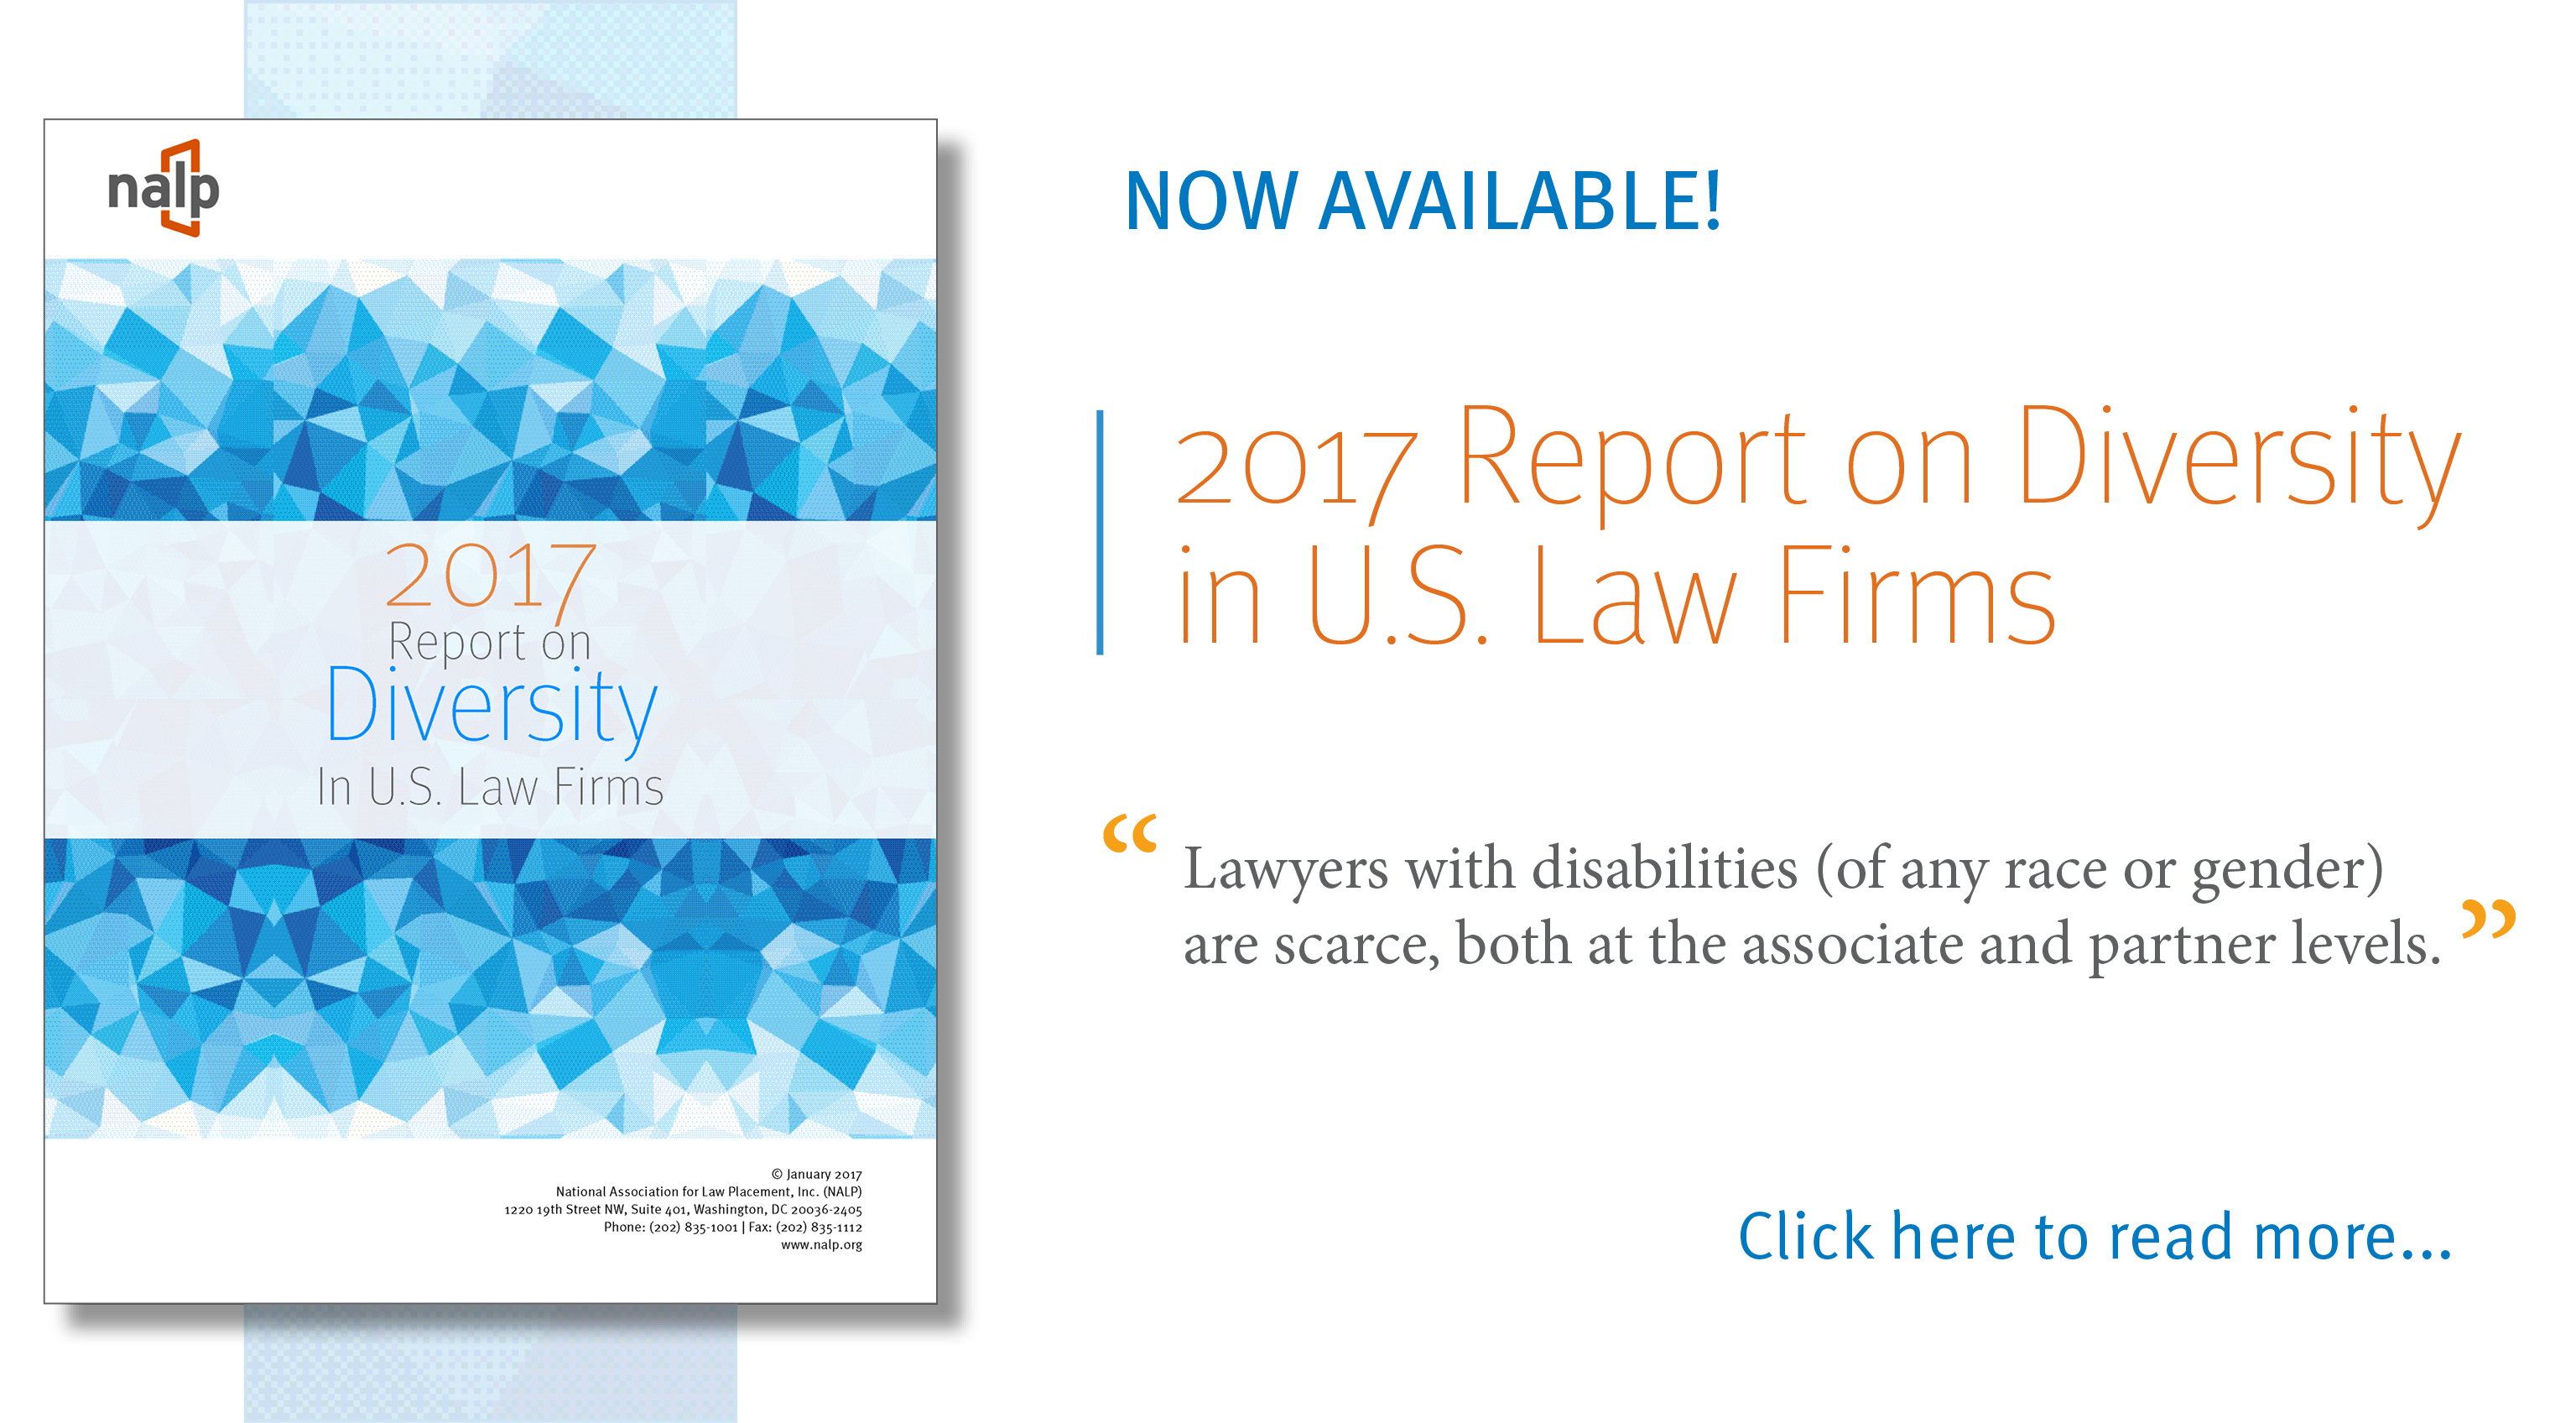 2017 Report on Diversity in U.S. Law Firms Feature Image